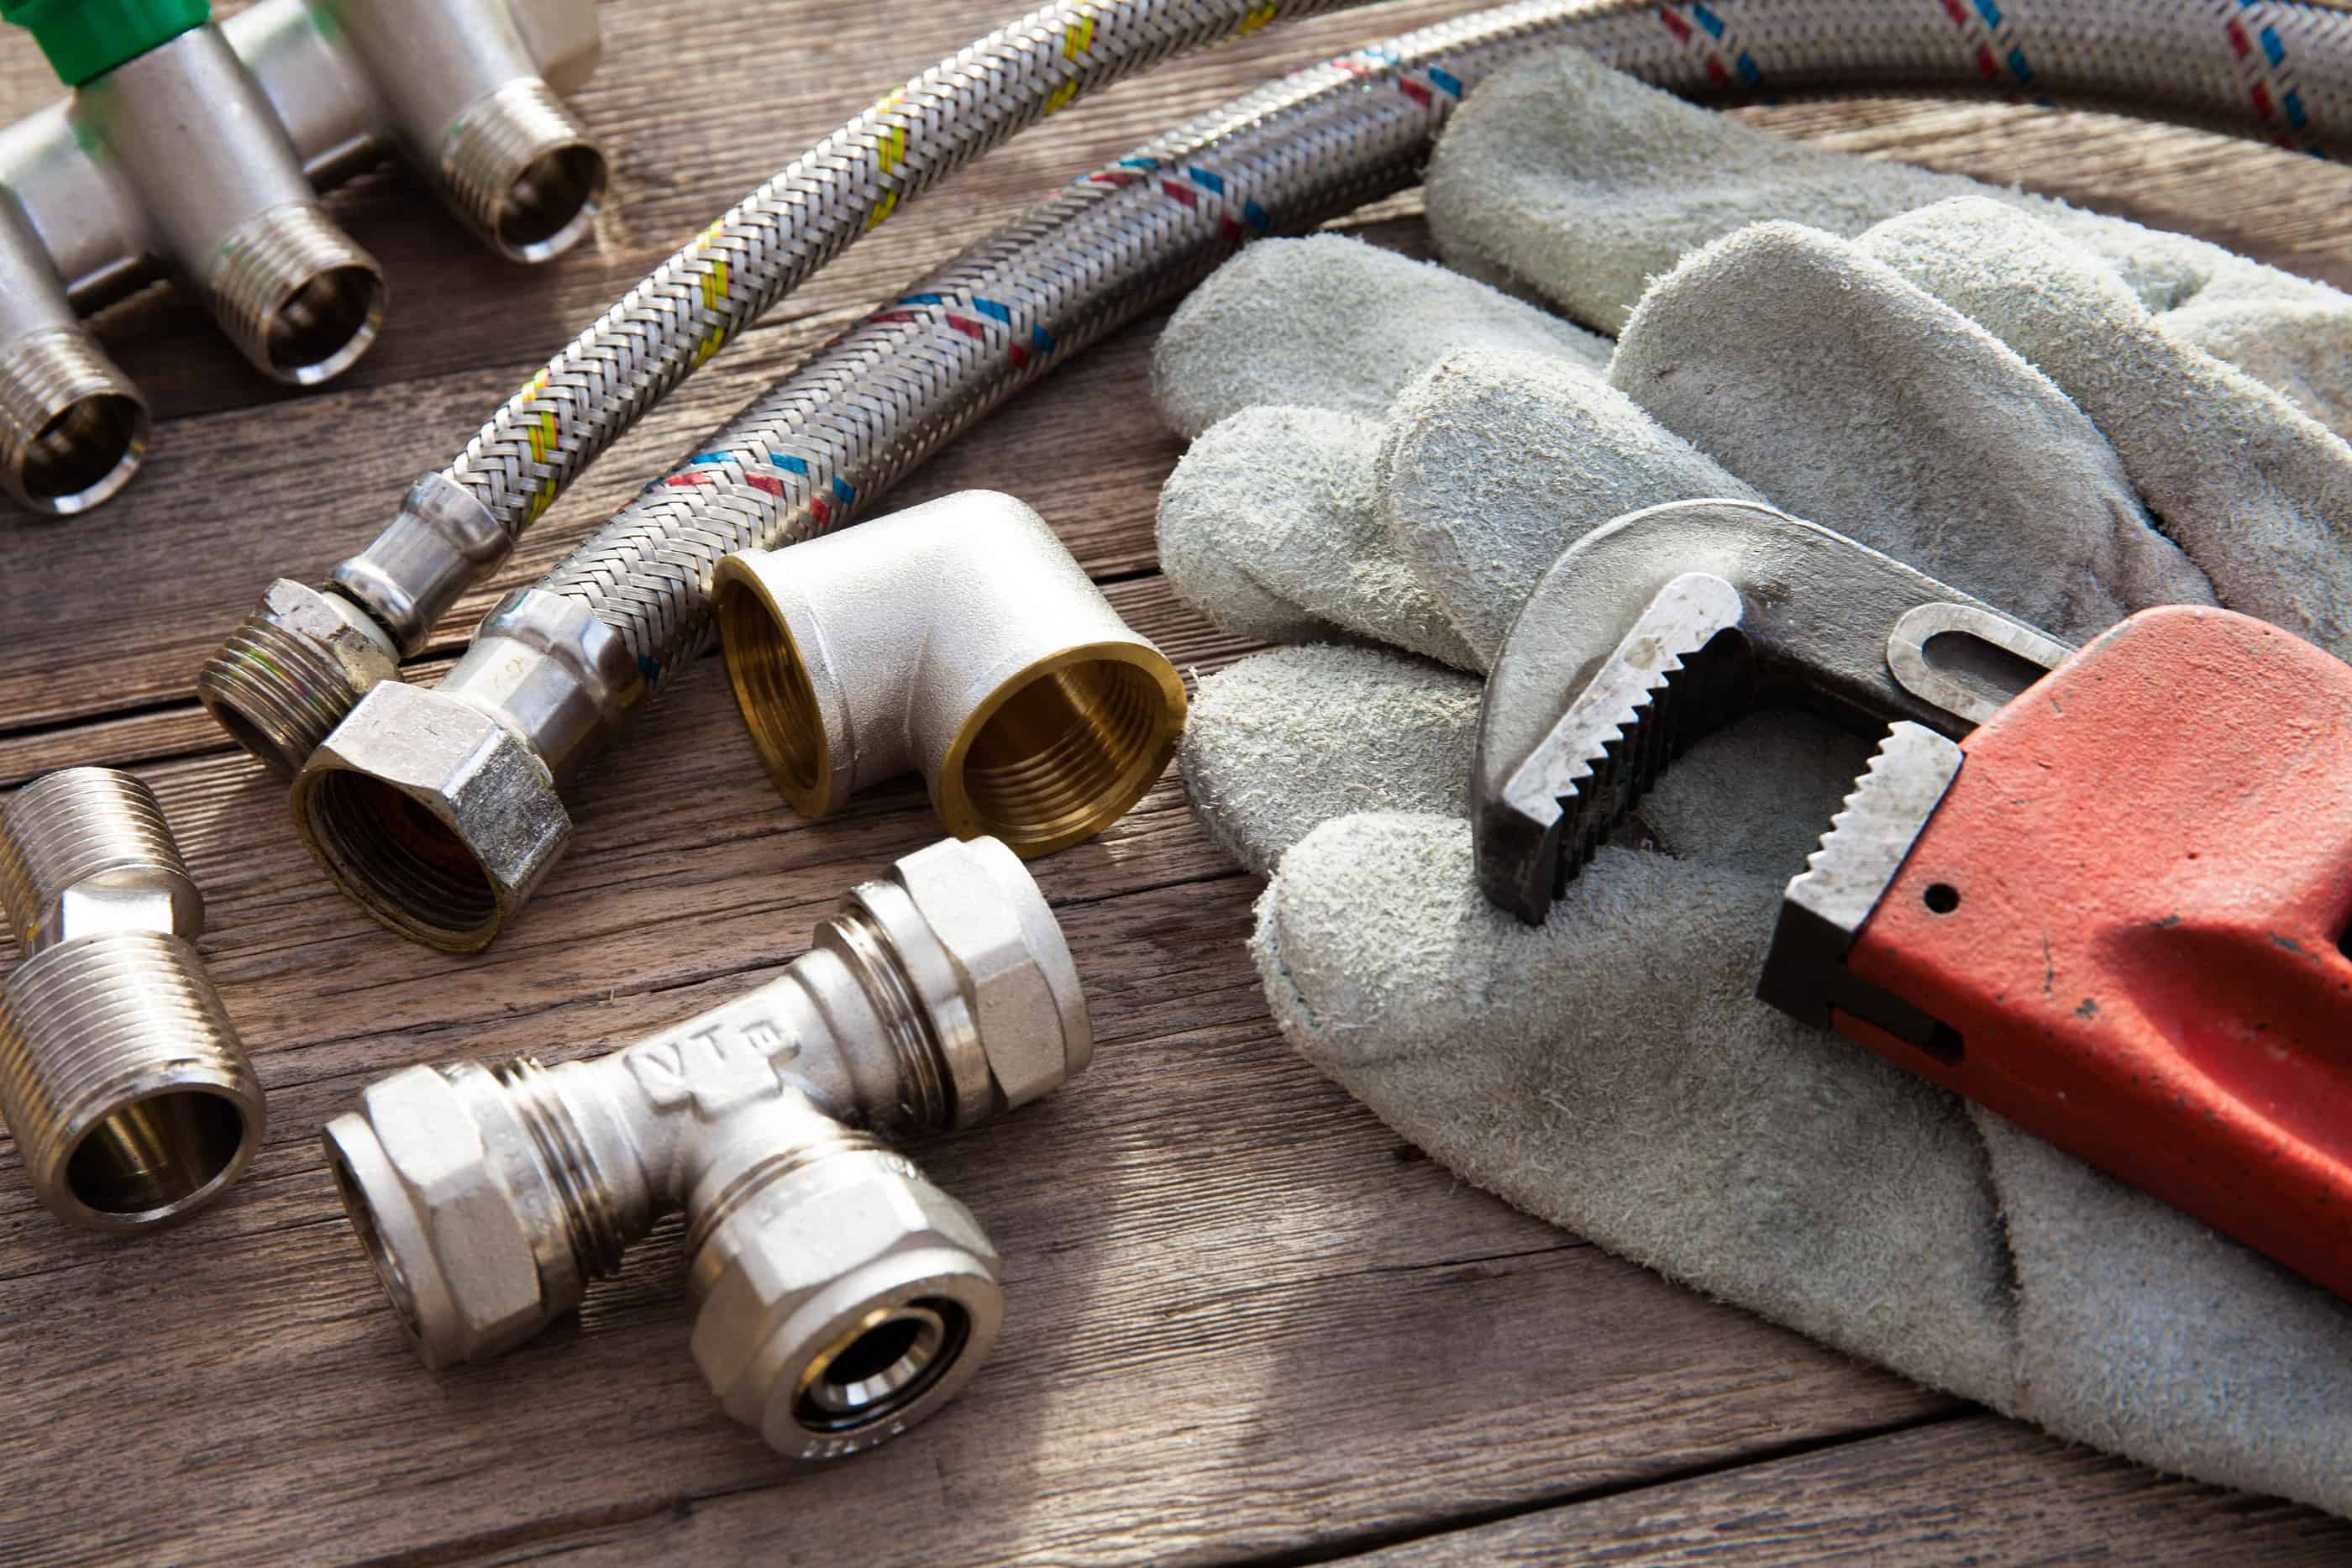 trenchless sewer repair and replacement FAQ